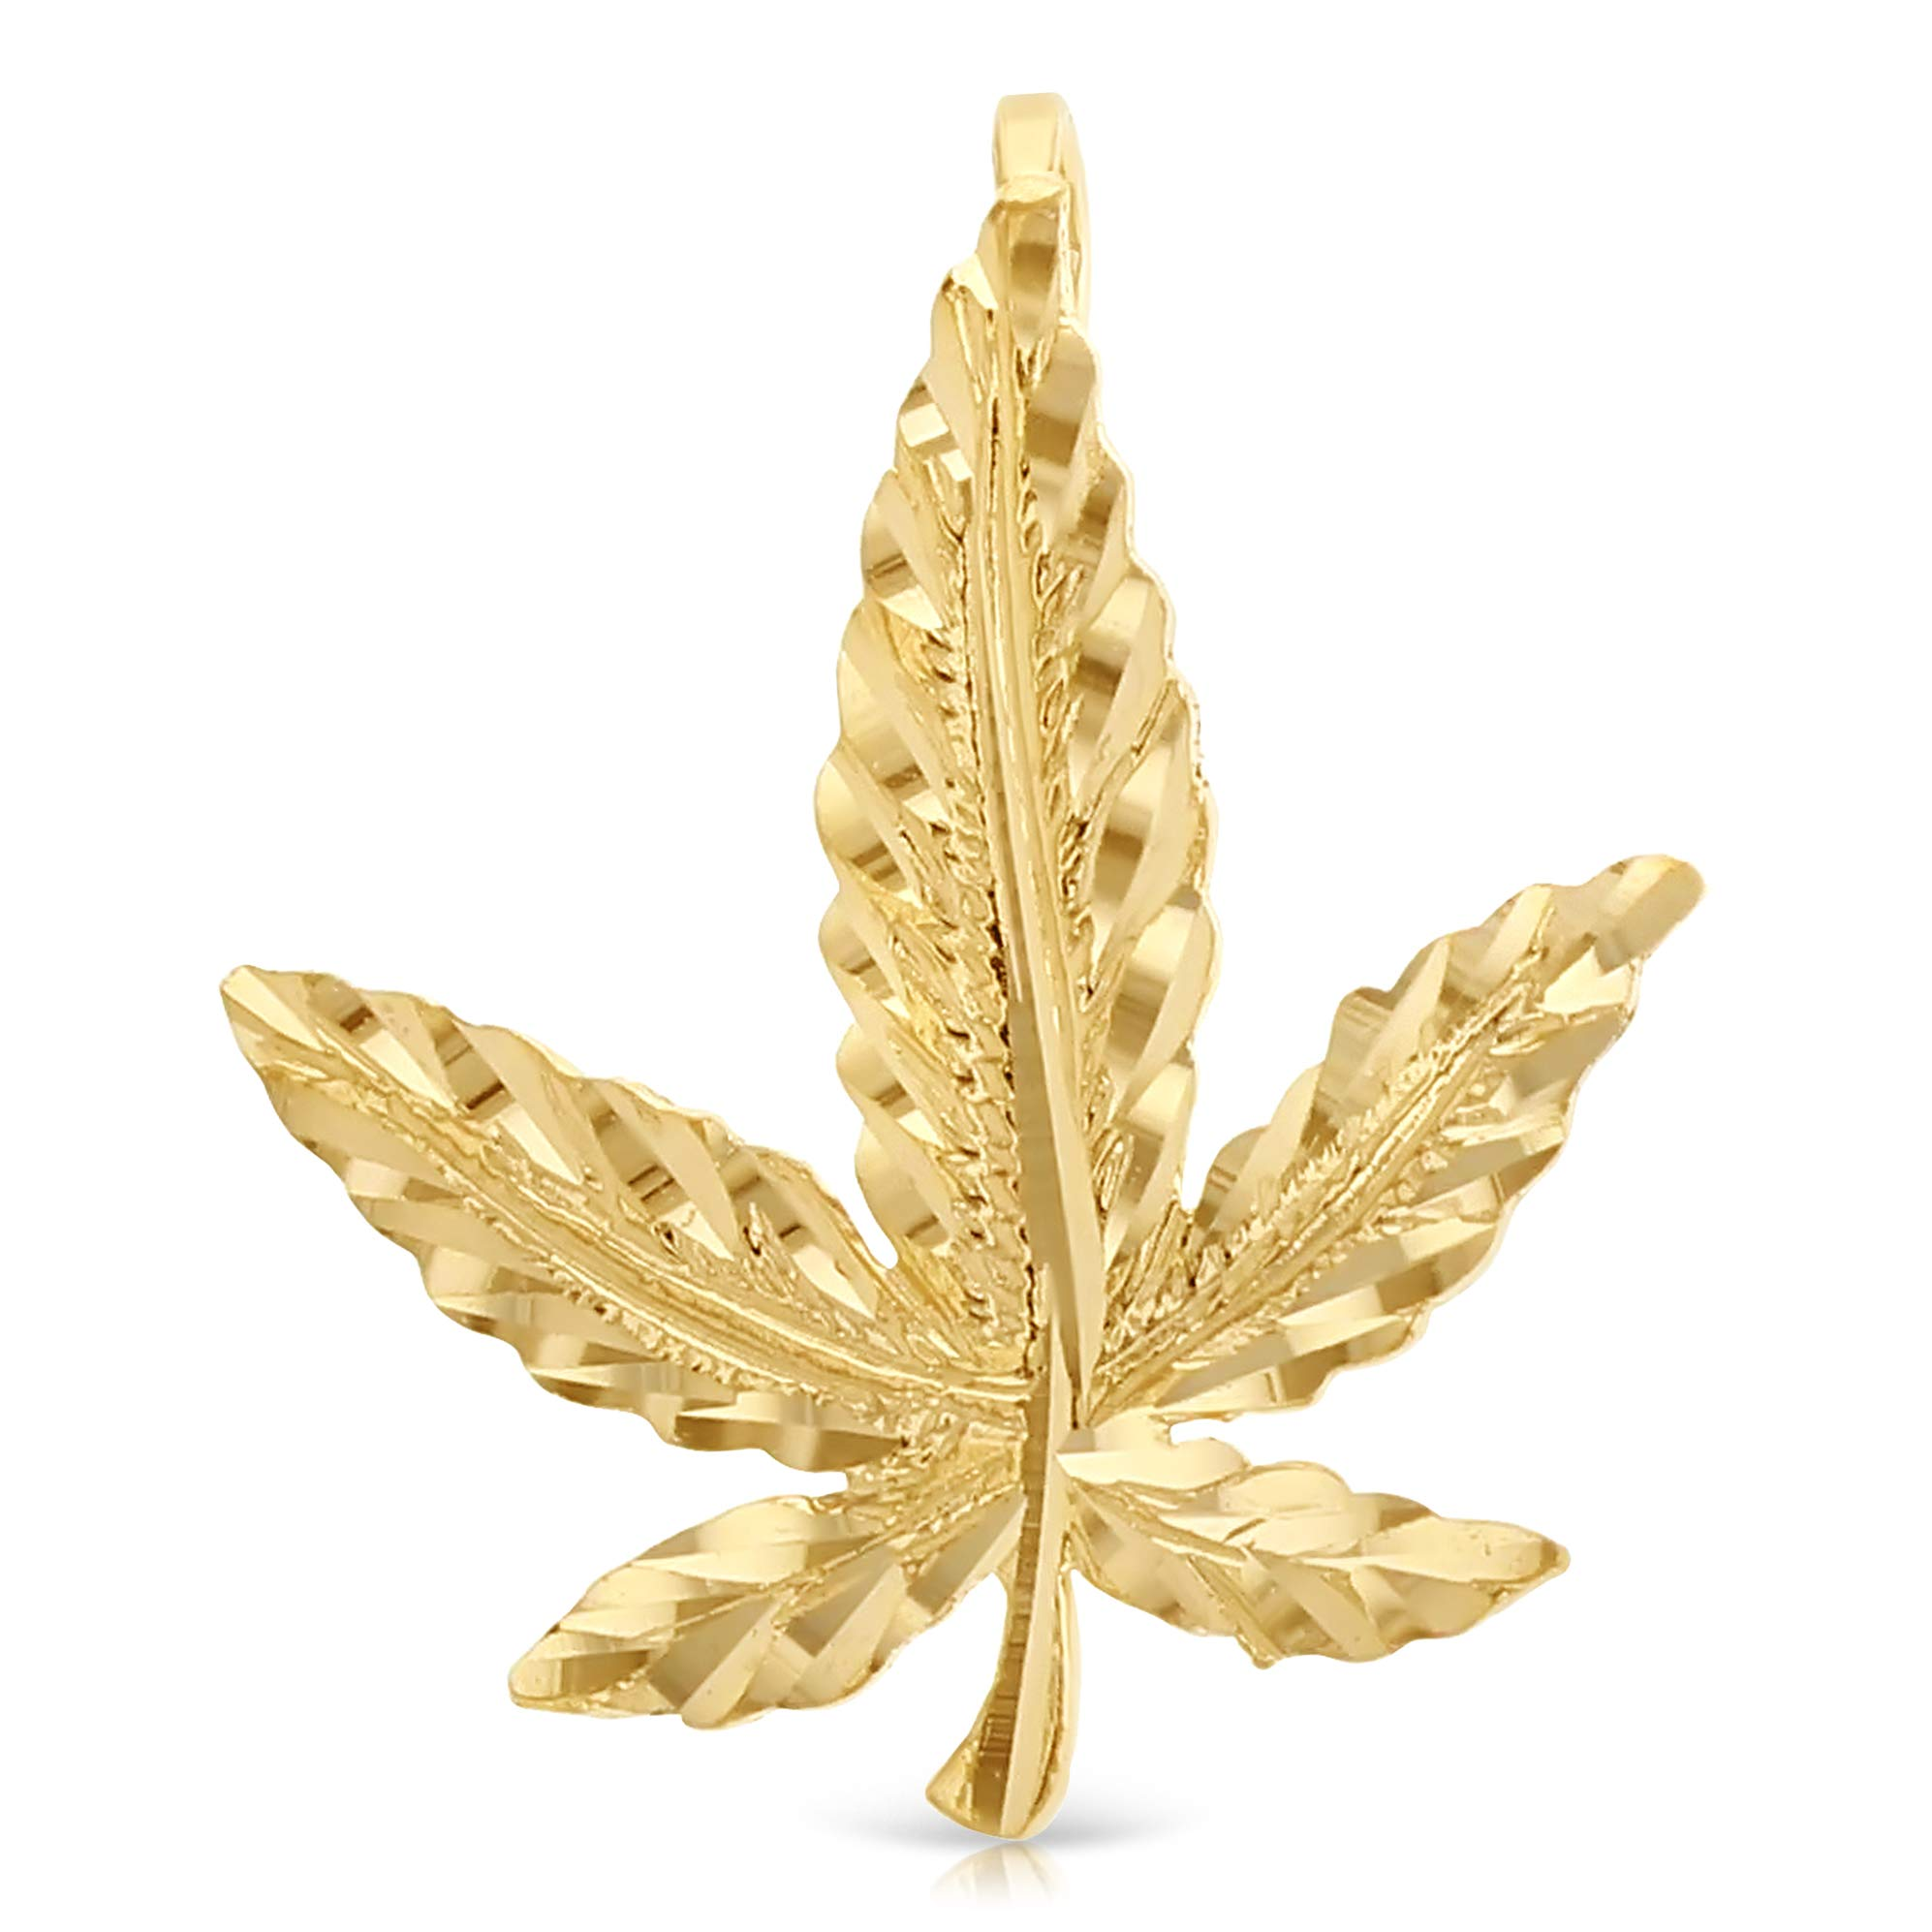 Ioka – 14K Yellow Gold Marijuana Leaf Charm Pendant For Necklace or Chain